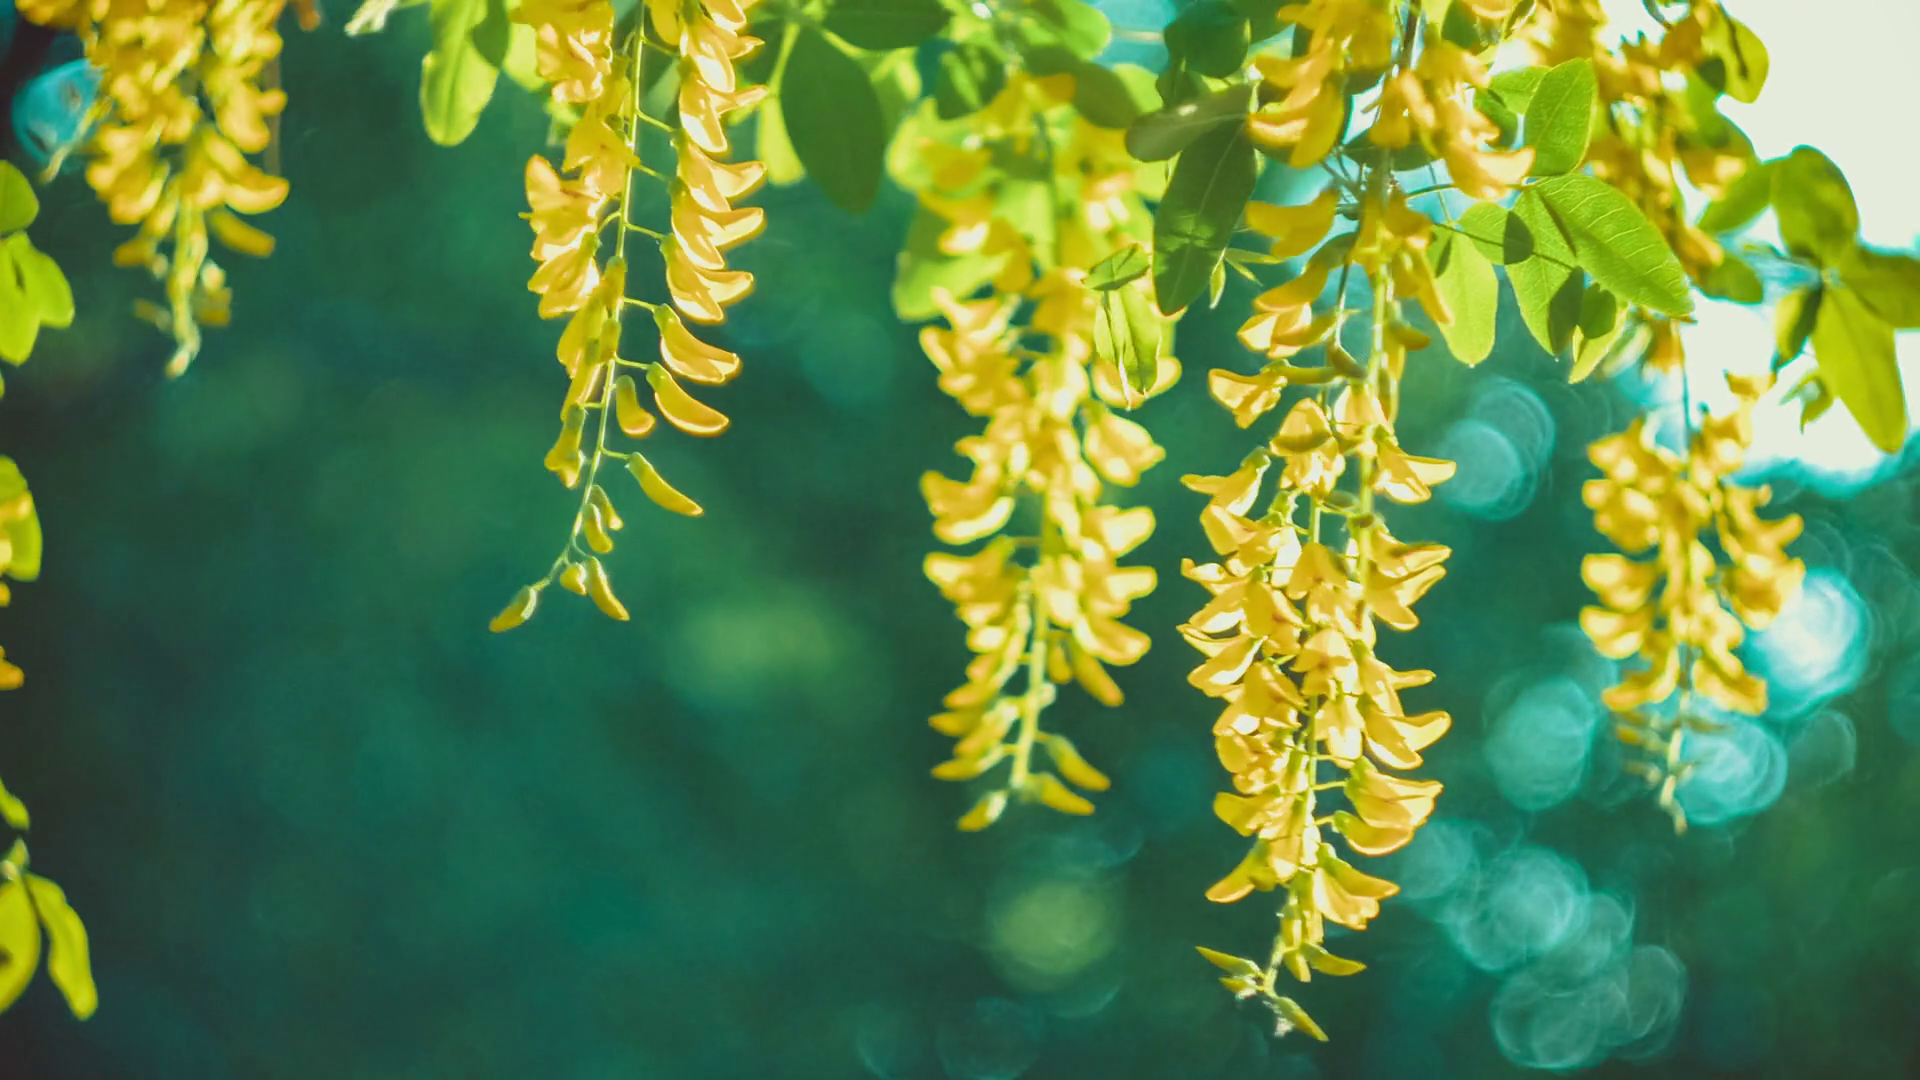 Free photo yellow blossom yellow summer garden free download yellow acacia blossom branch wind moving the hanging flowers mightylinksfo